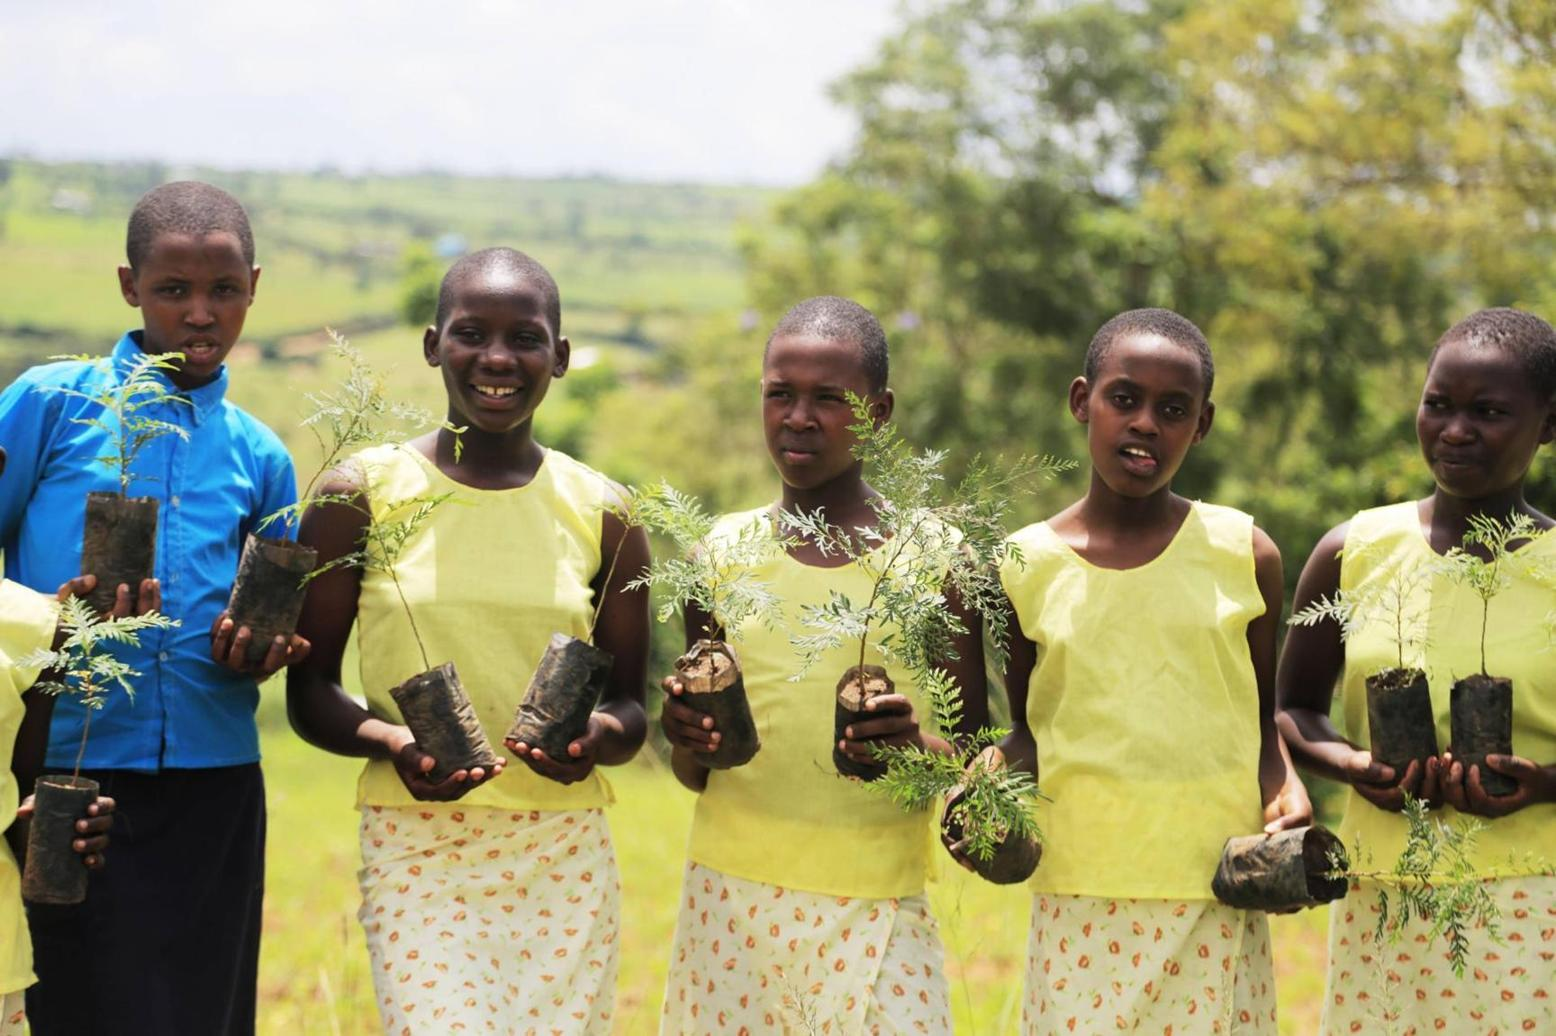 Rwanda to plant over 43 million trees in new campaign